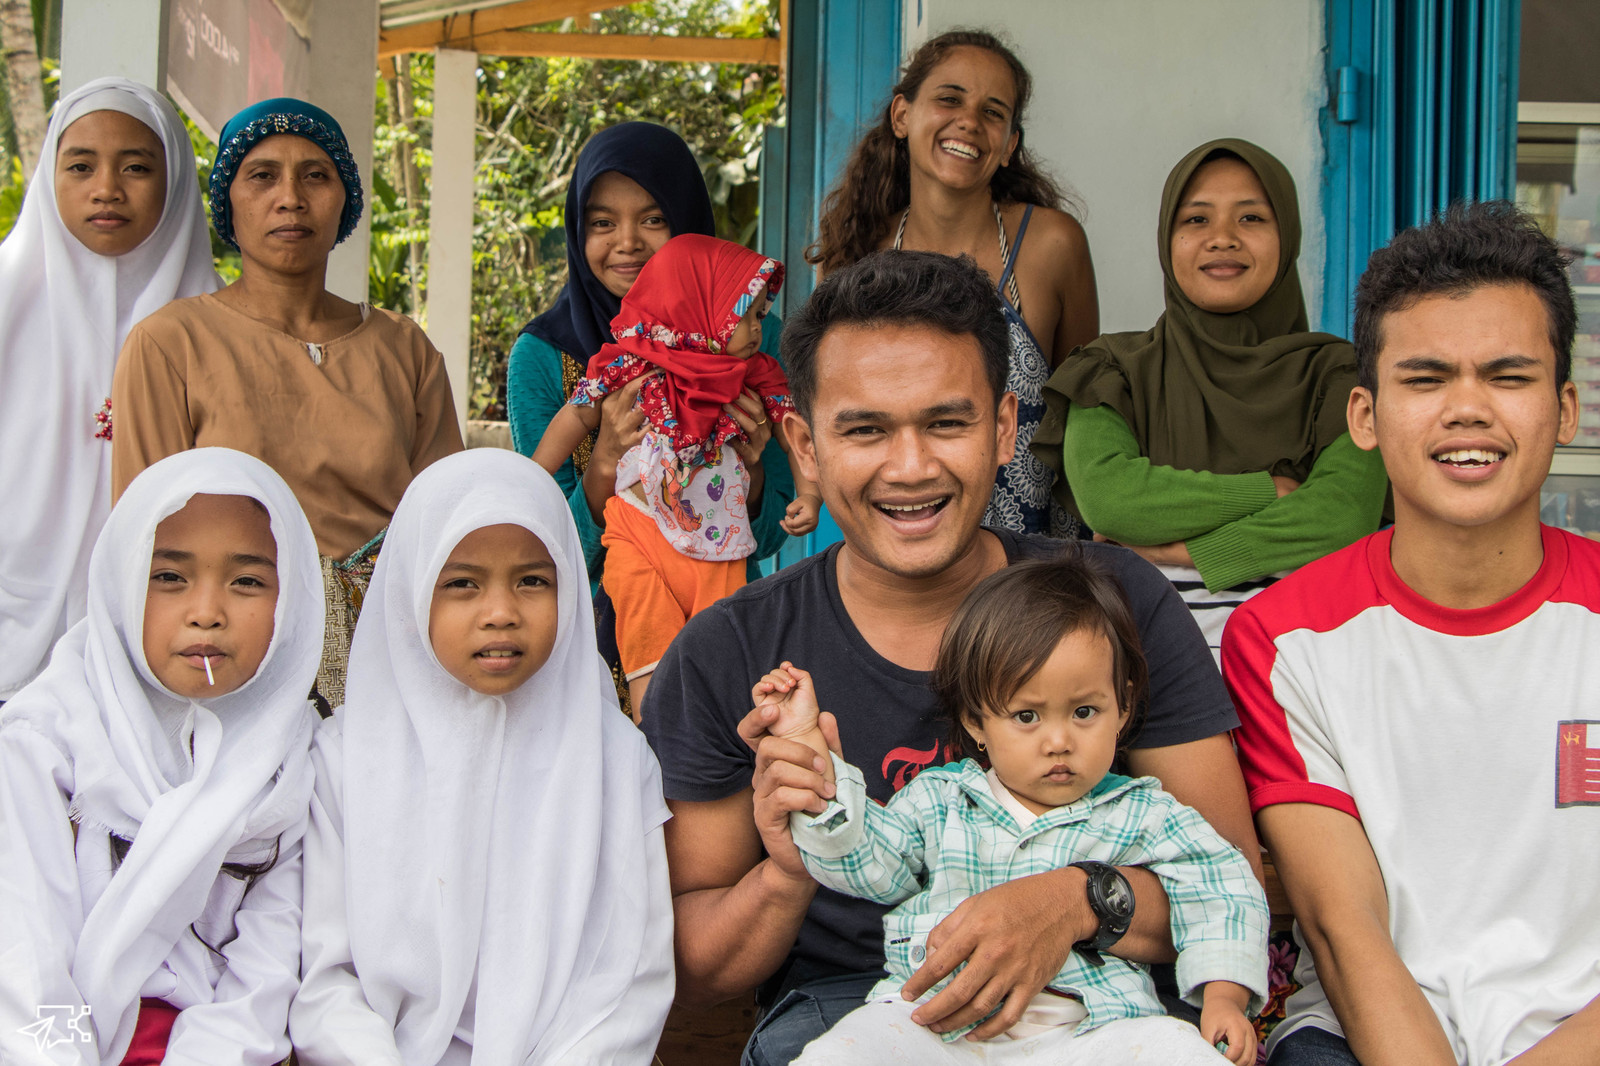 family come first in indonesia culture